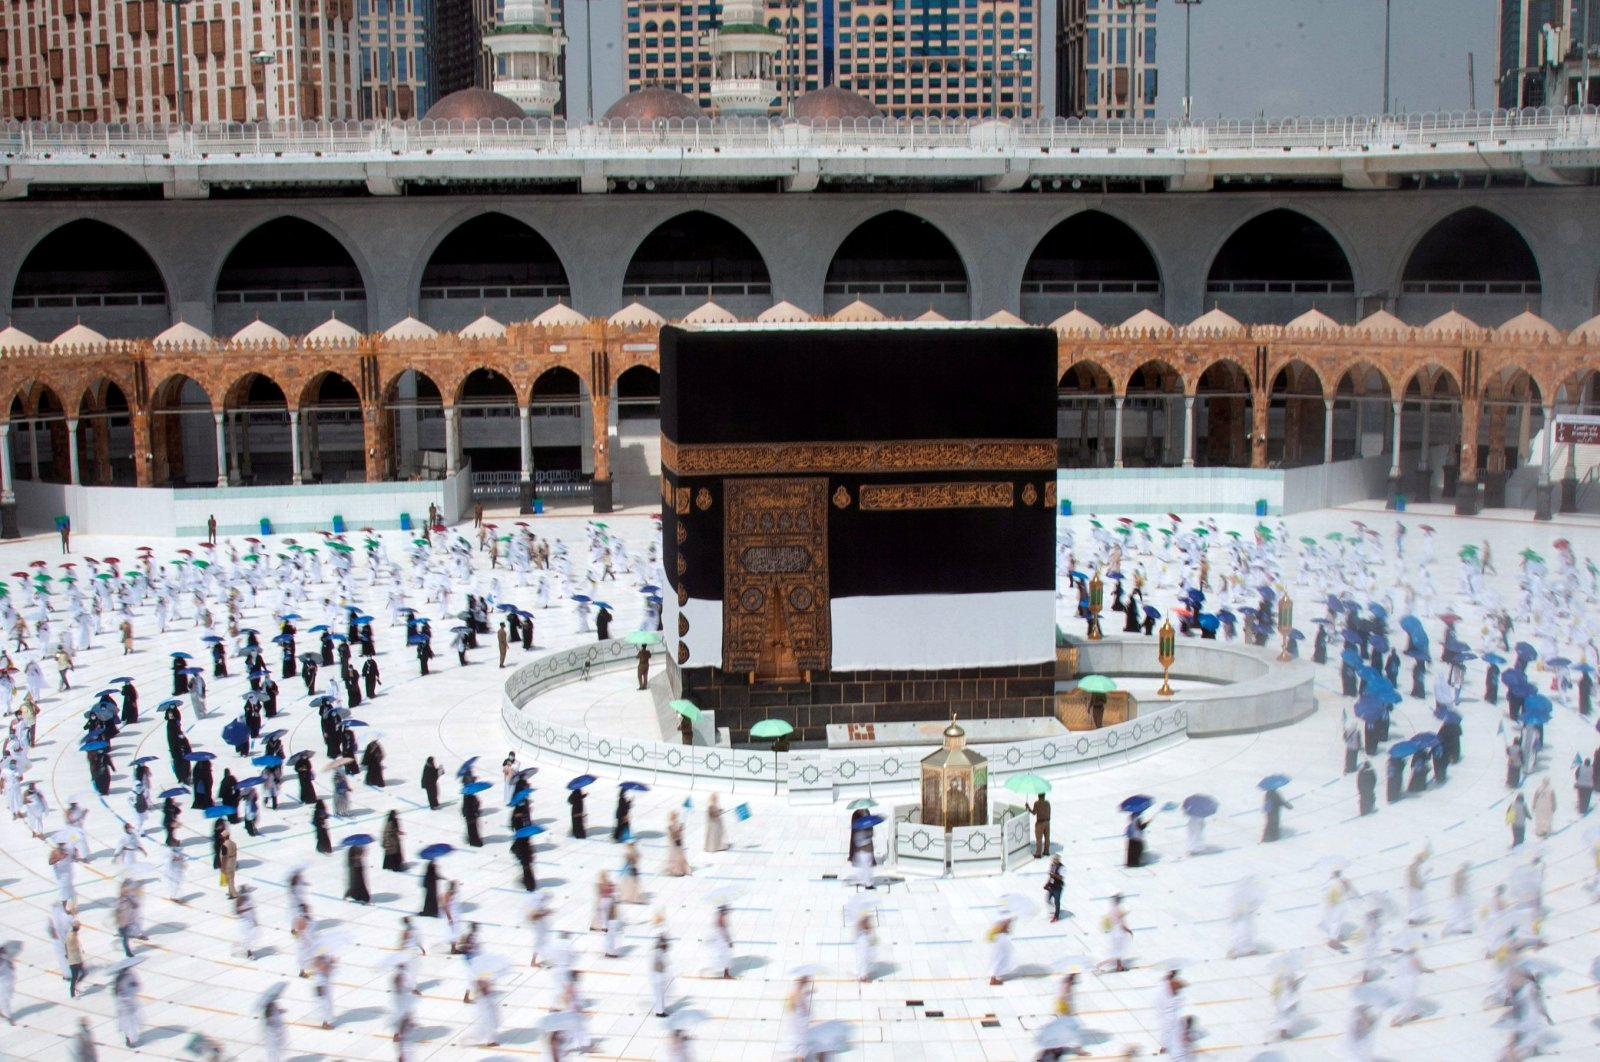 Muslim pilgrims maintain social distancing as they circle the Kaaba at the Grand Mosque during the annual Haj pilgrimage amid the COVID-19 pandemic, in the holy city of Mecca, Saudi Arabia, July 29, 2020. (Saudi Ministry of Media/Handout via Reuters)